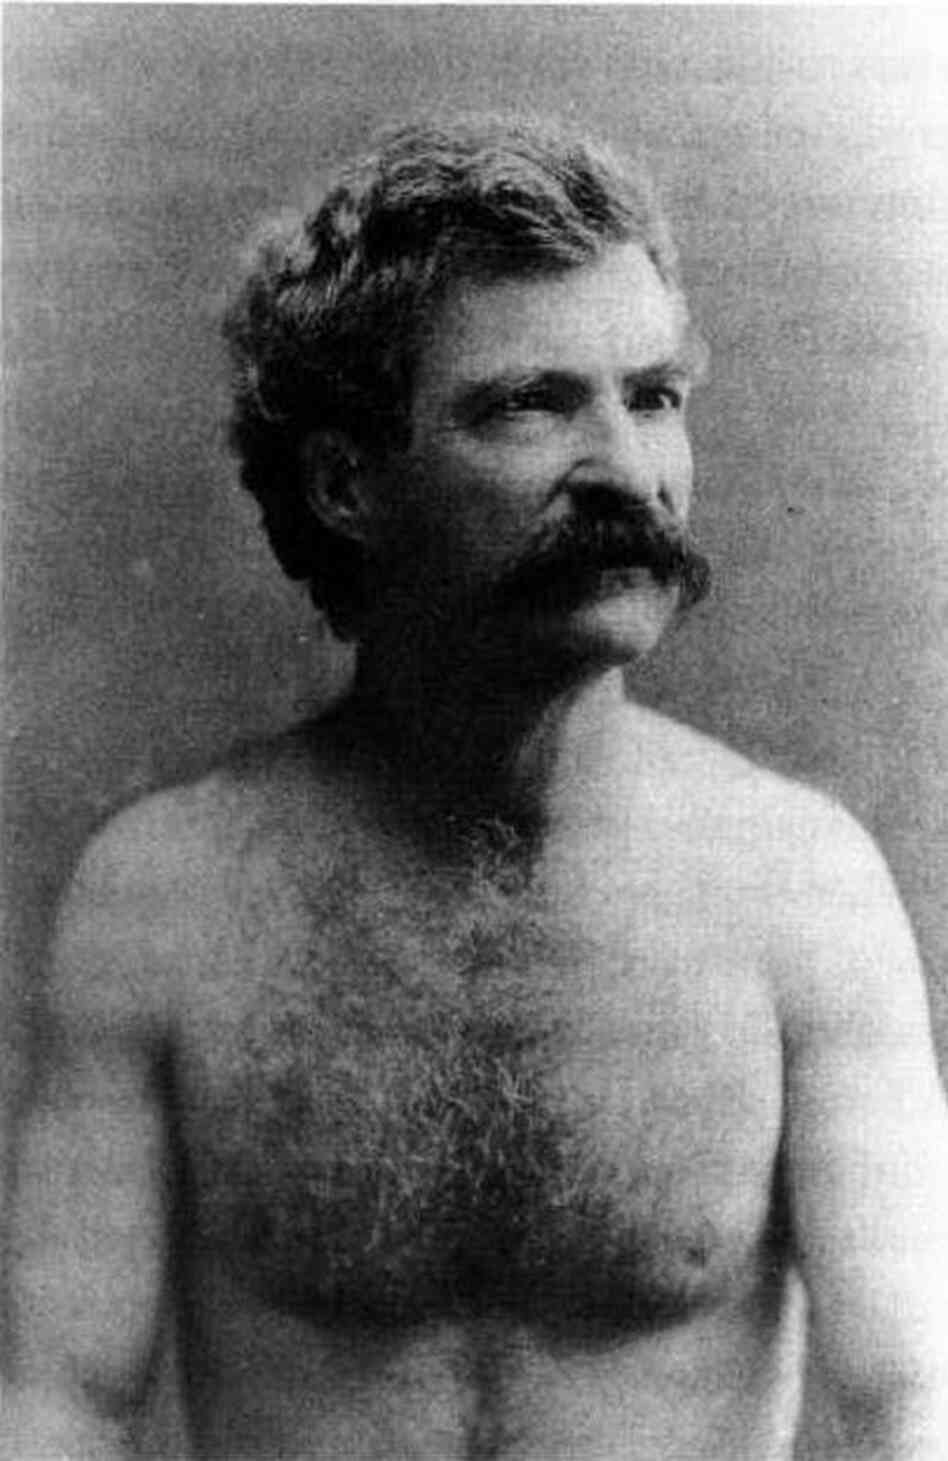 A photo of Mark Twain from the 188